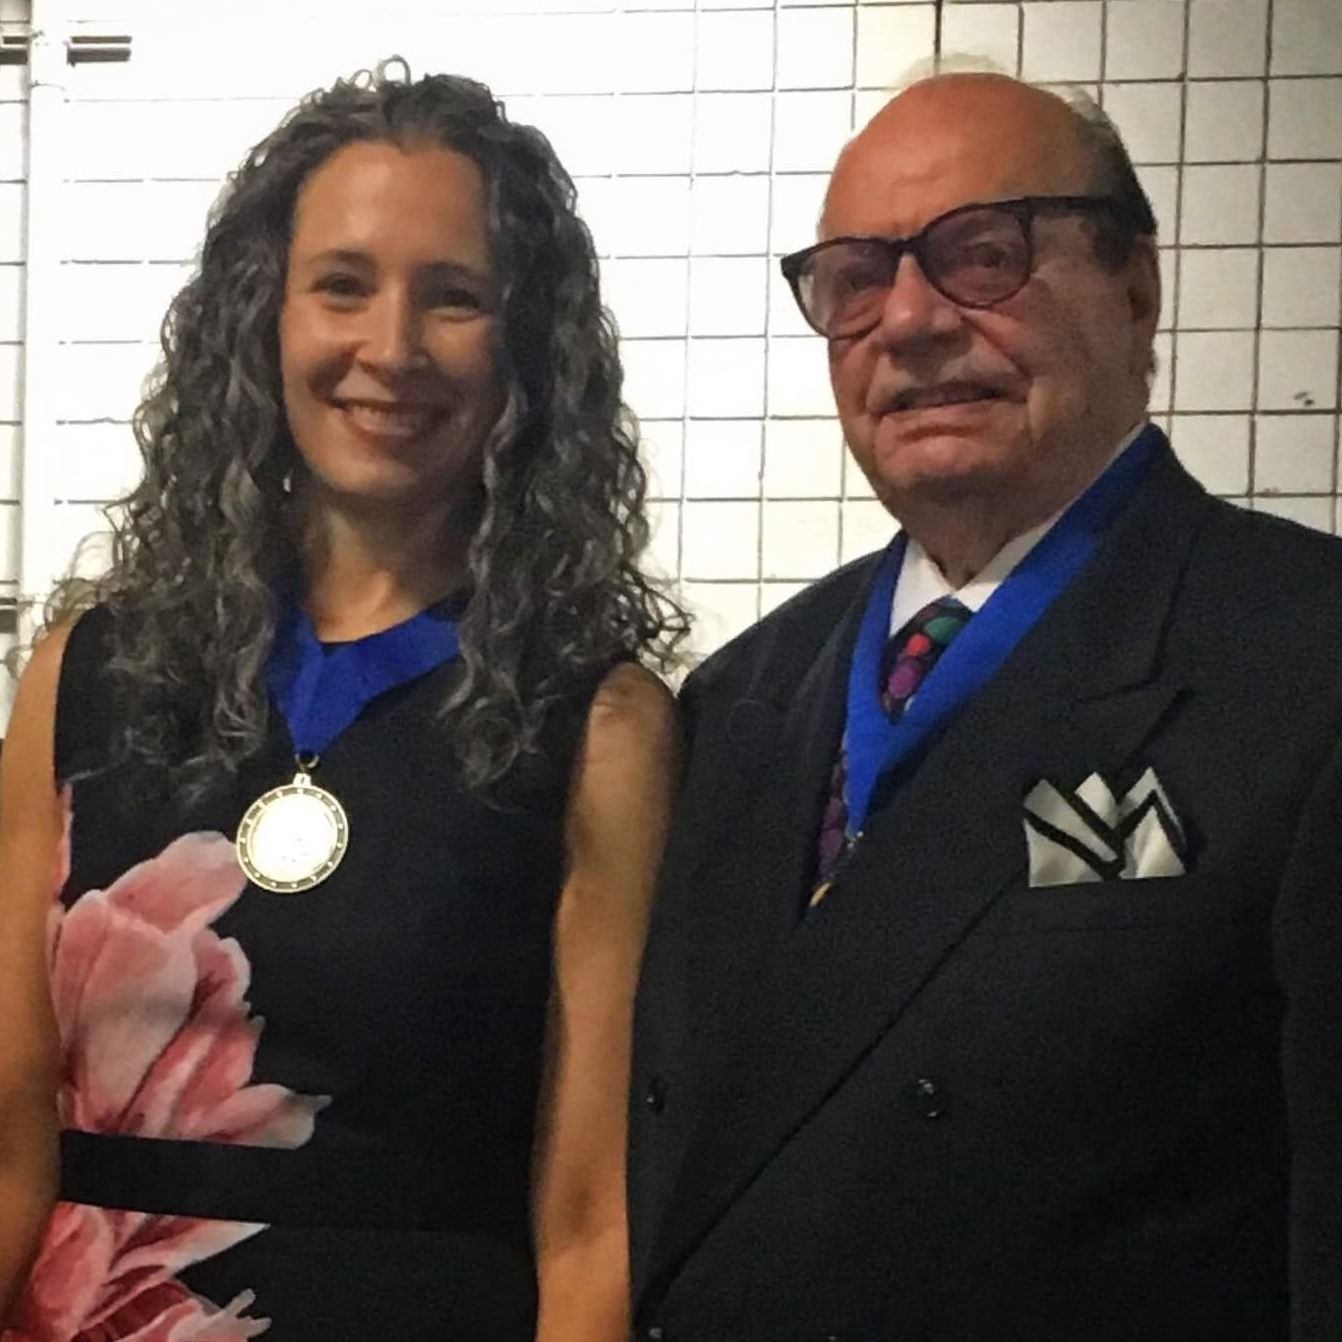 Erika Flint is awarded the Order of Braid designation from the National Guild of Hypnotists